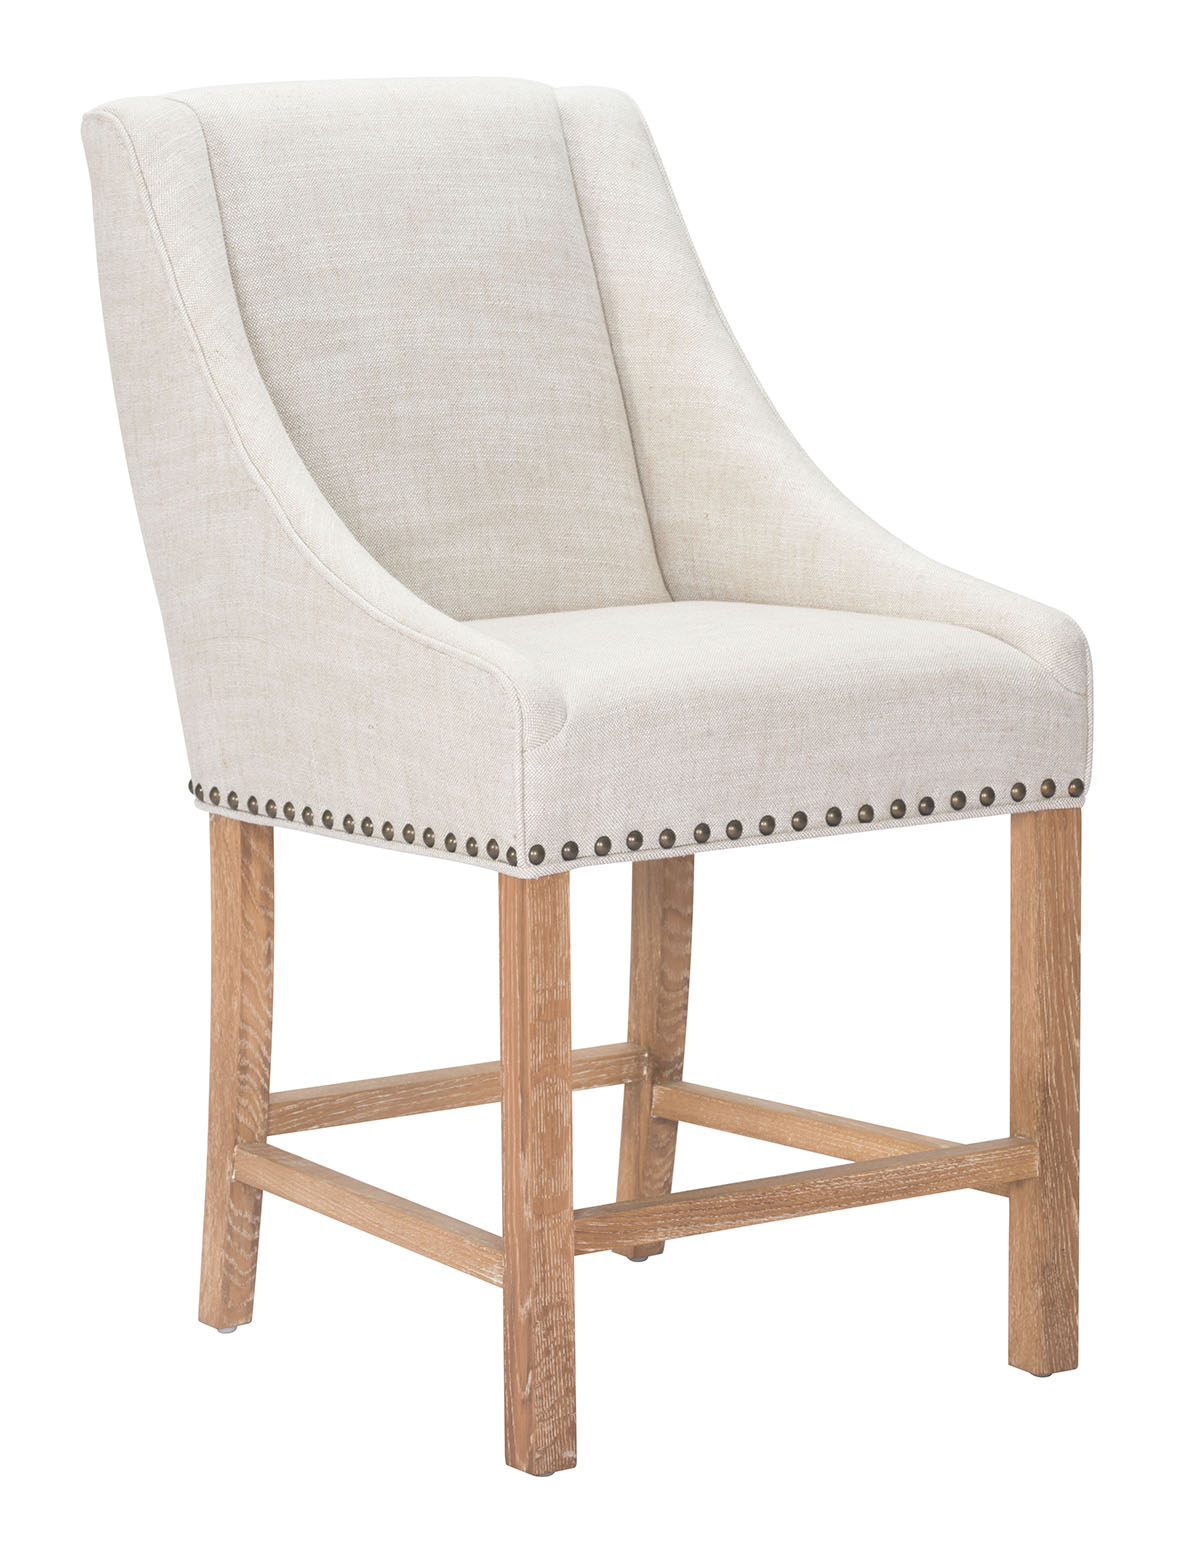 indio-counter-chair-beige.jpg